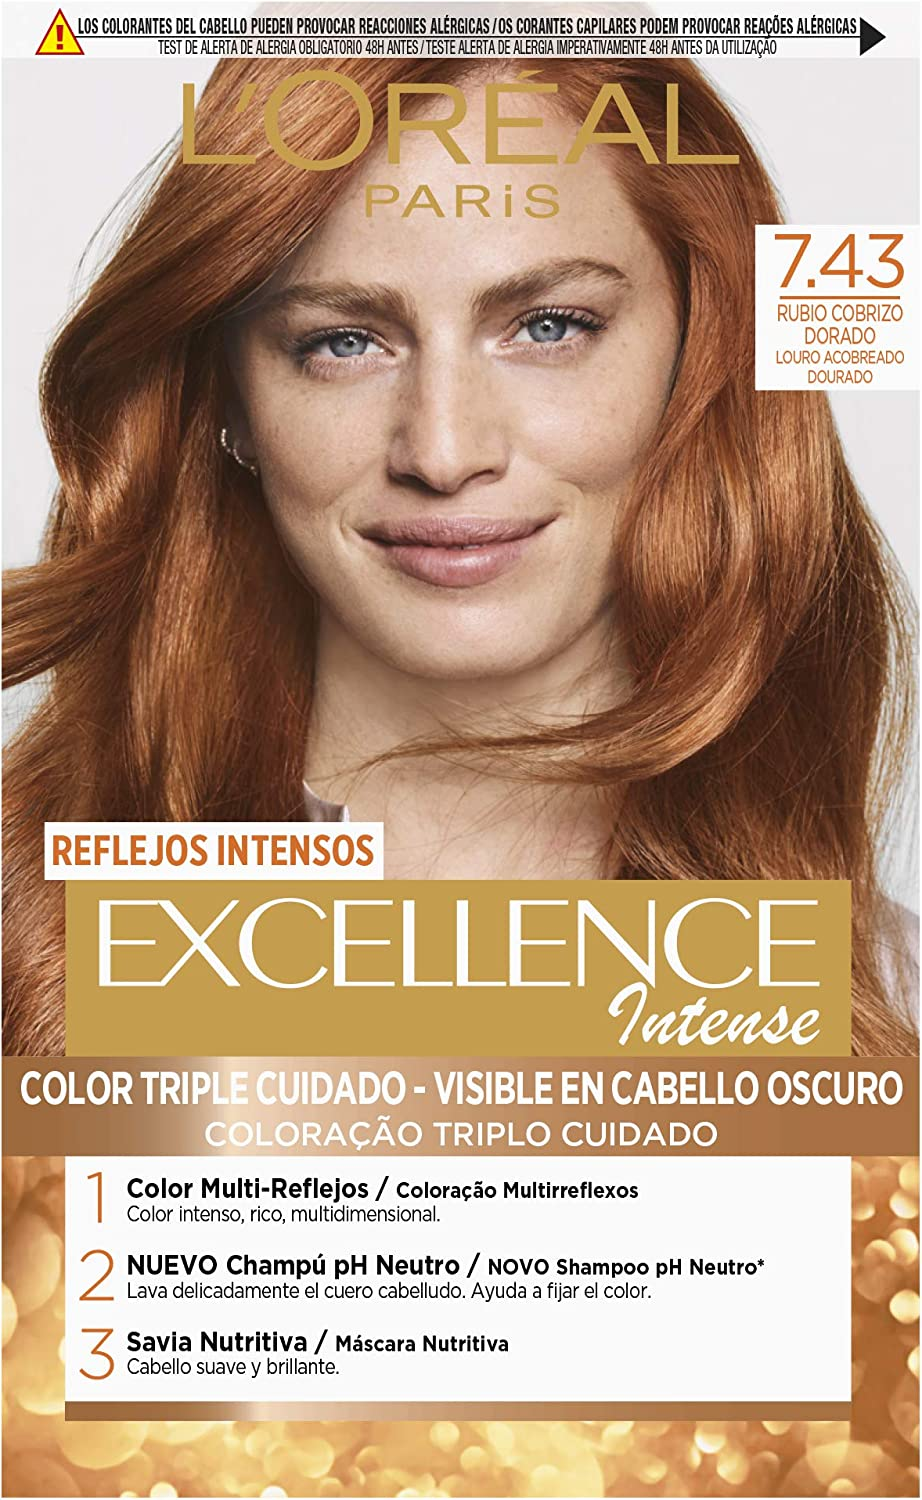 L'Oréal Paris Excellence Intense Coloración Tono: 7,43 Rubio Cobrizo Dorado